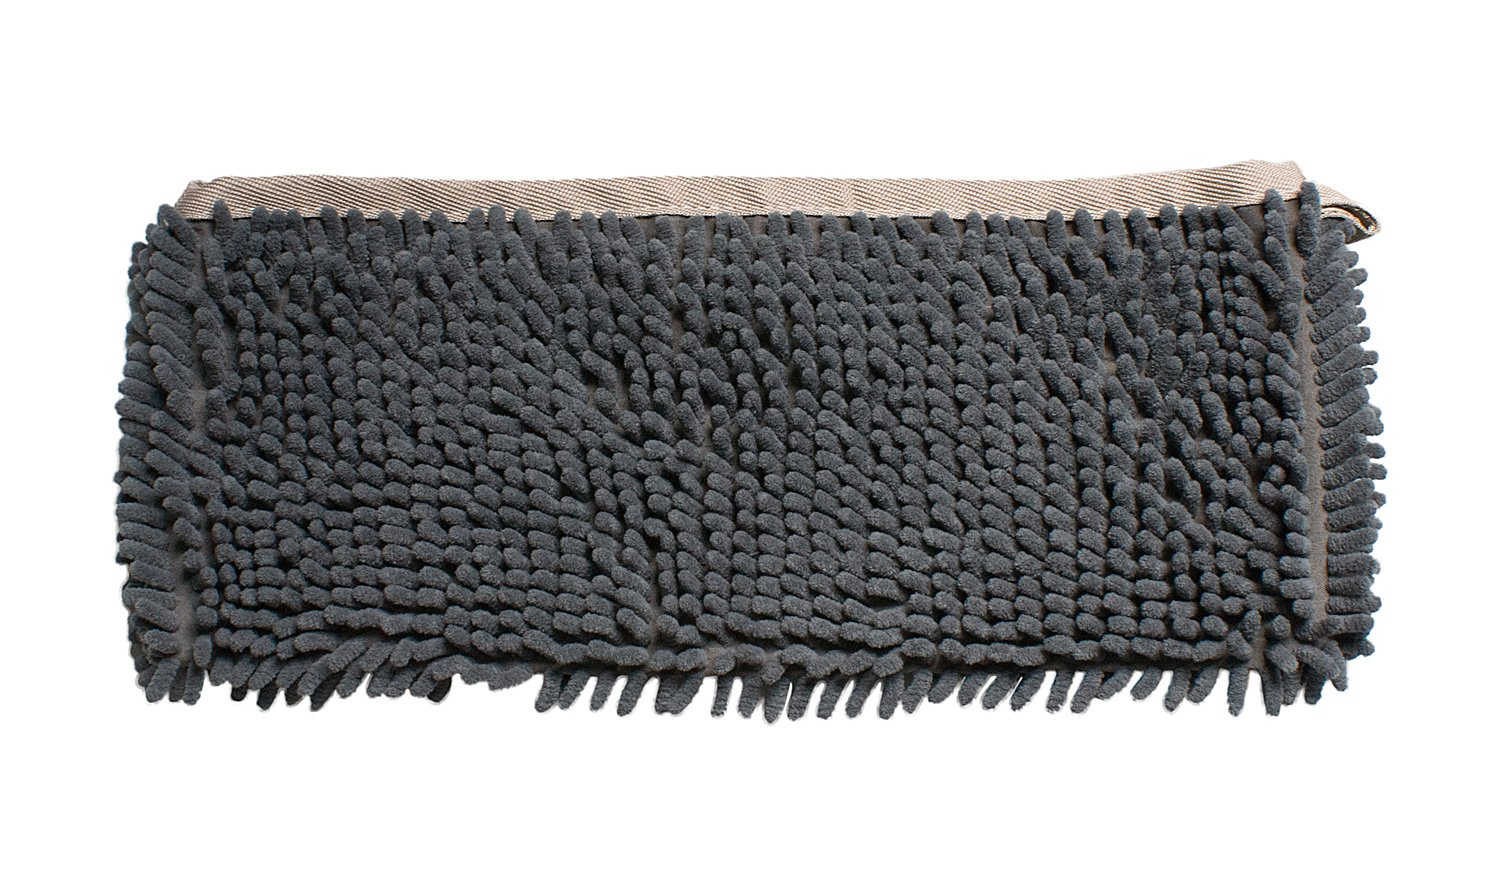 Forpet Dog Drying Shammy Towel Chenille Cats Bathing Chenille Towel Quick Dry (M, Grey)